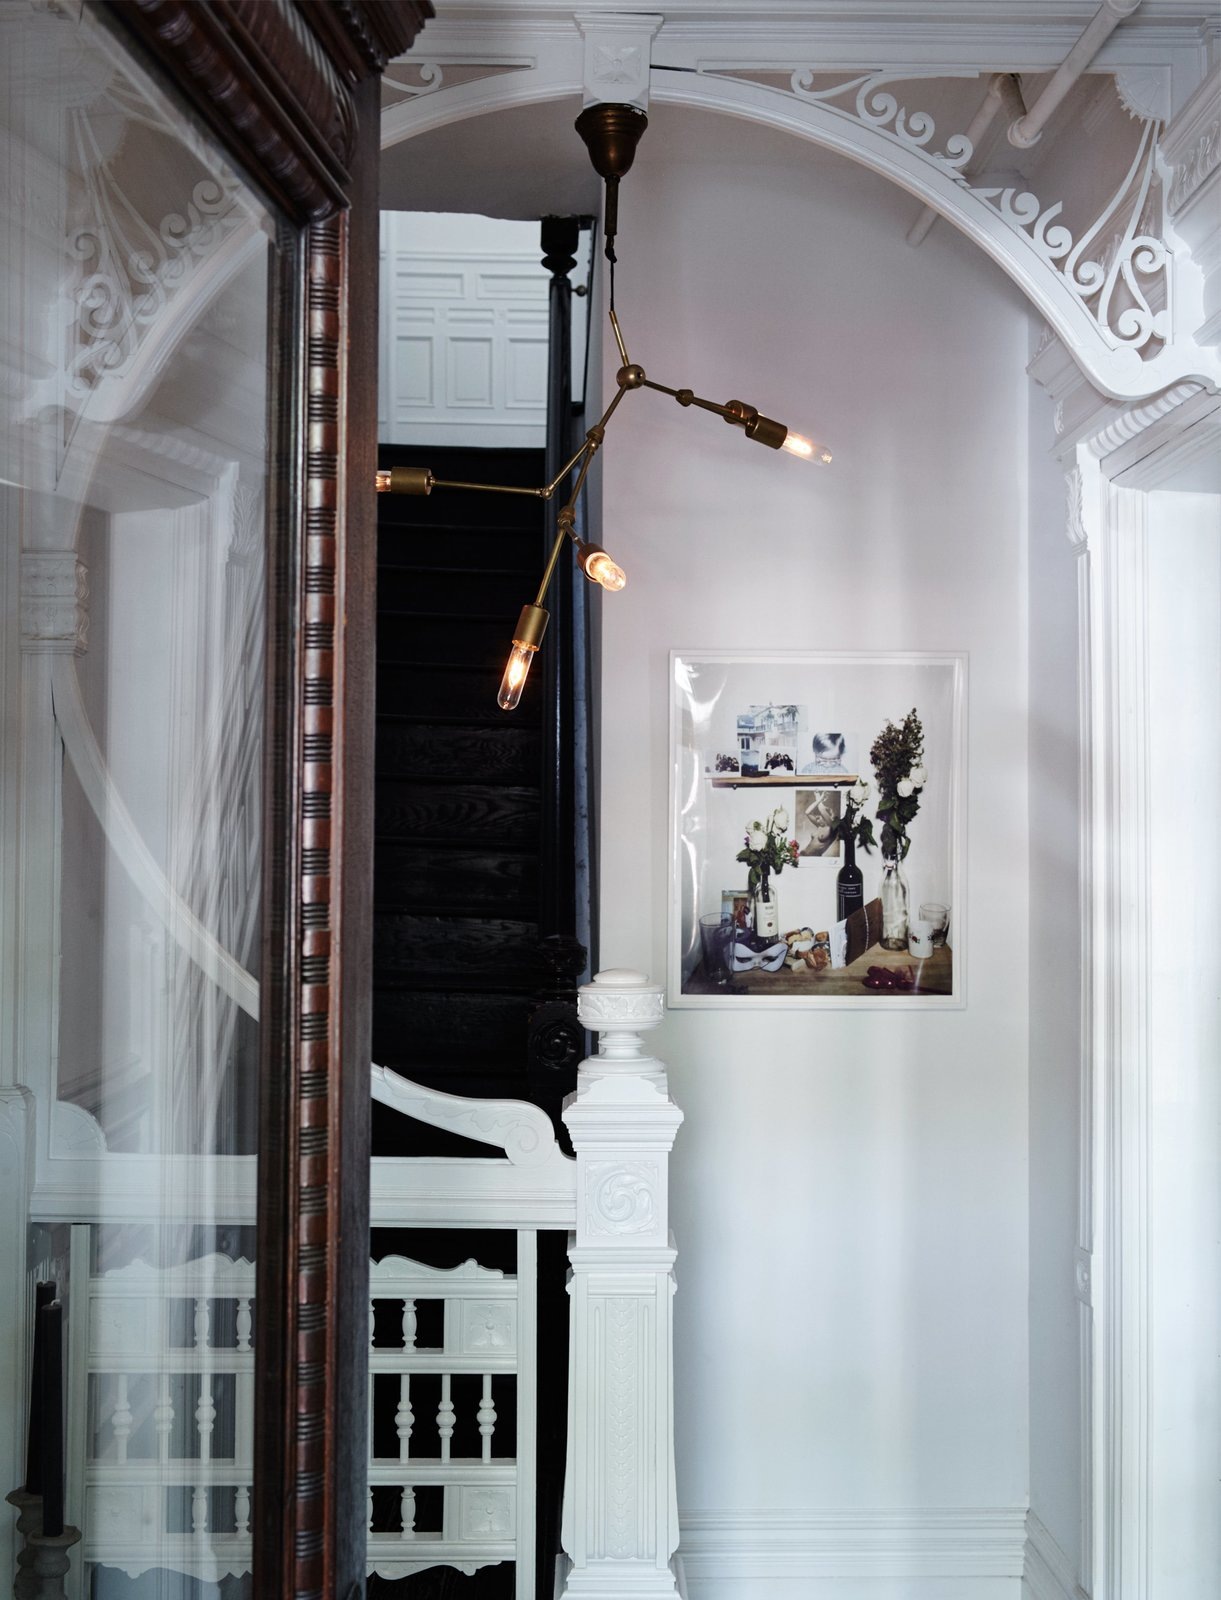 Madalena Gnewikow Residence hallway with industrial brass pendant hanging in front of staircase with wood tread and railings.